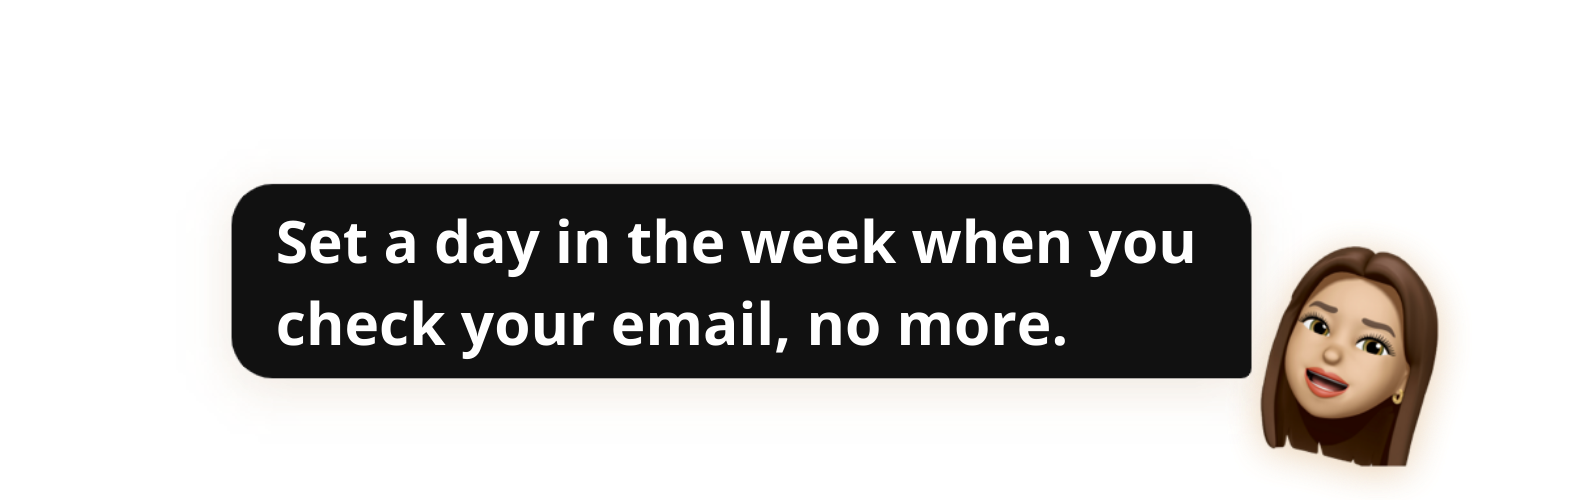 Set a day in the week when you check your email, no more - Popwork